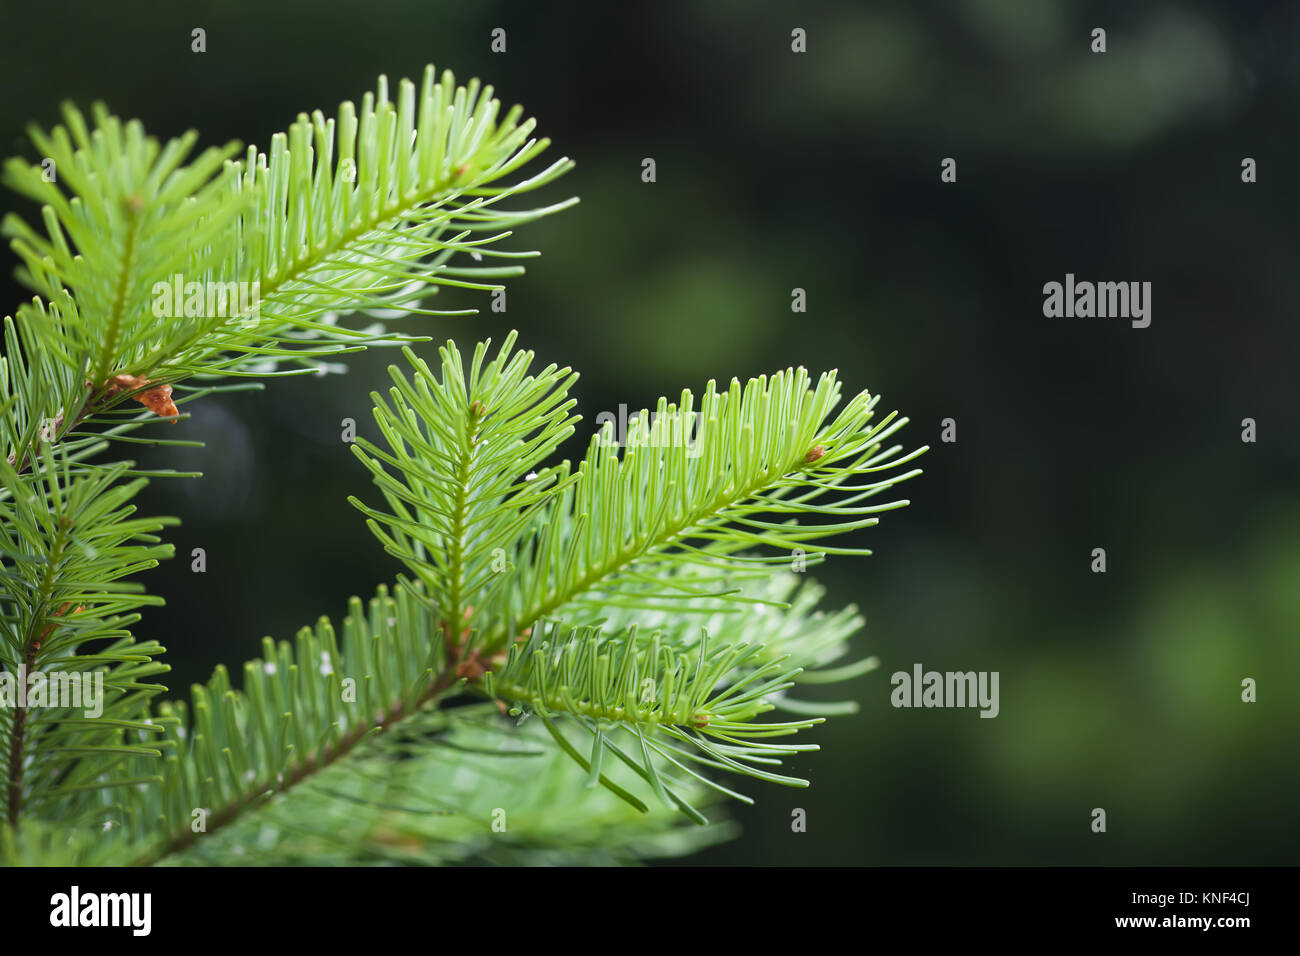 Green spruce branch. soft and blurry background. macro view, soft focus. - Stock Image